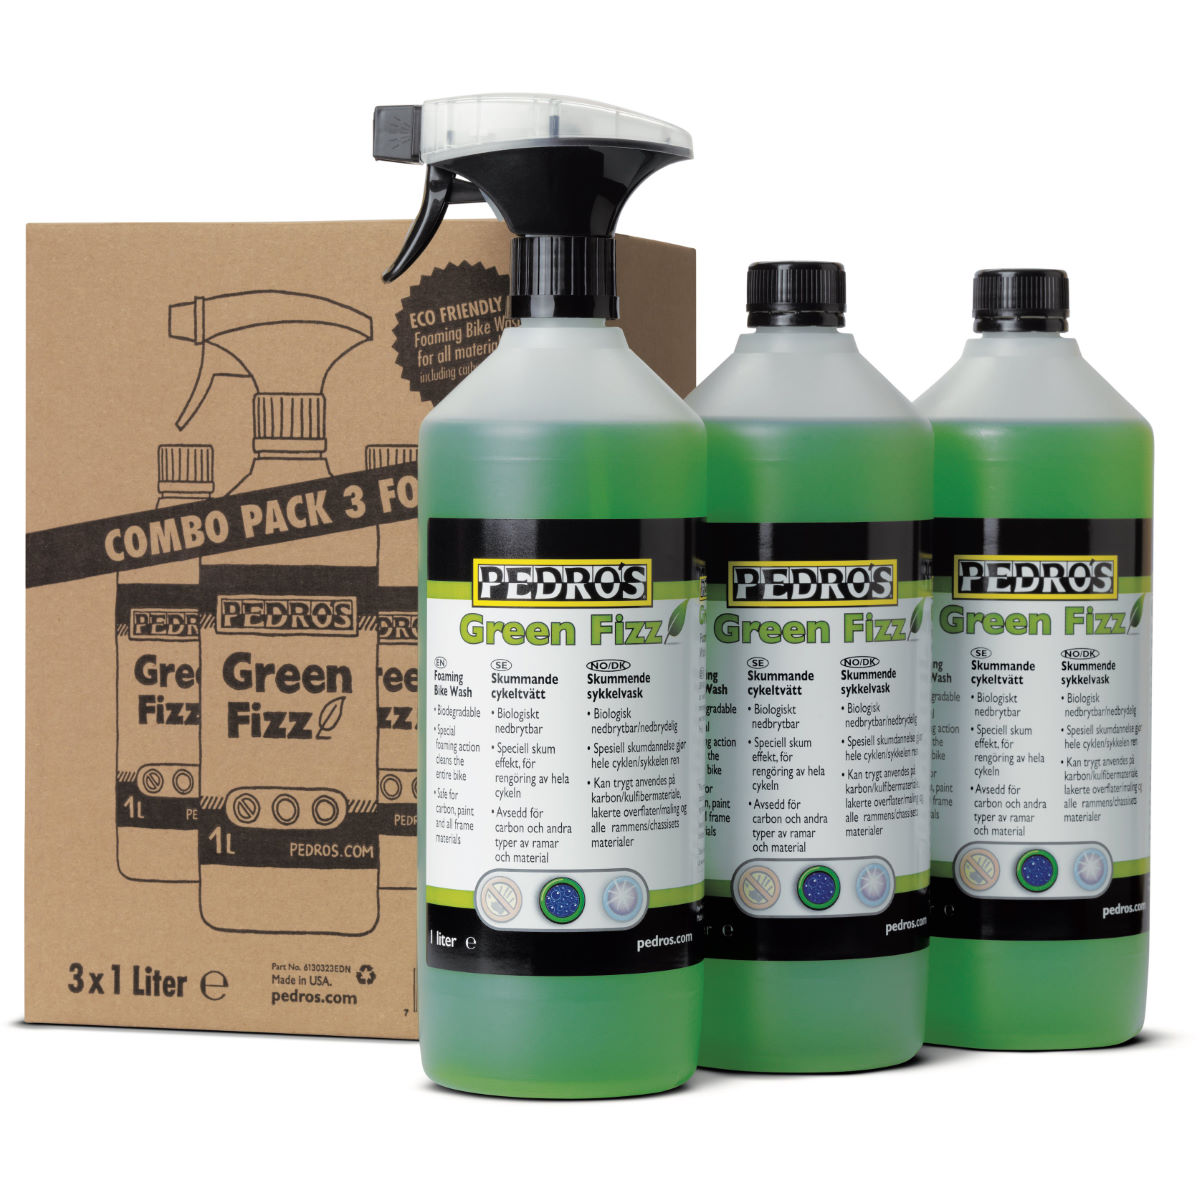 Pedros Pedros Green Fizz Bundle   Cleaning Products